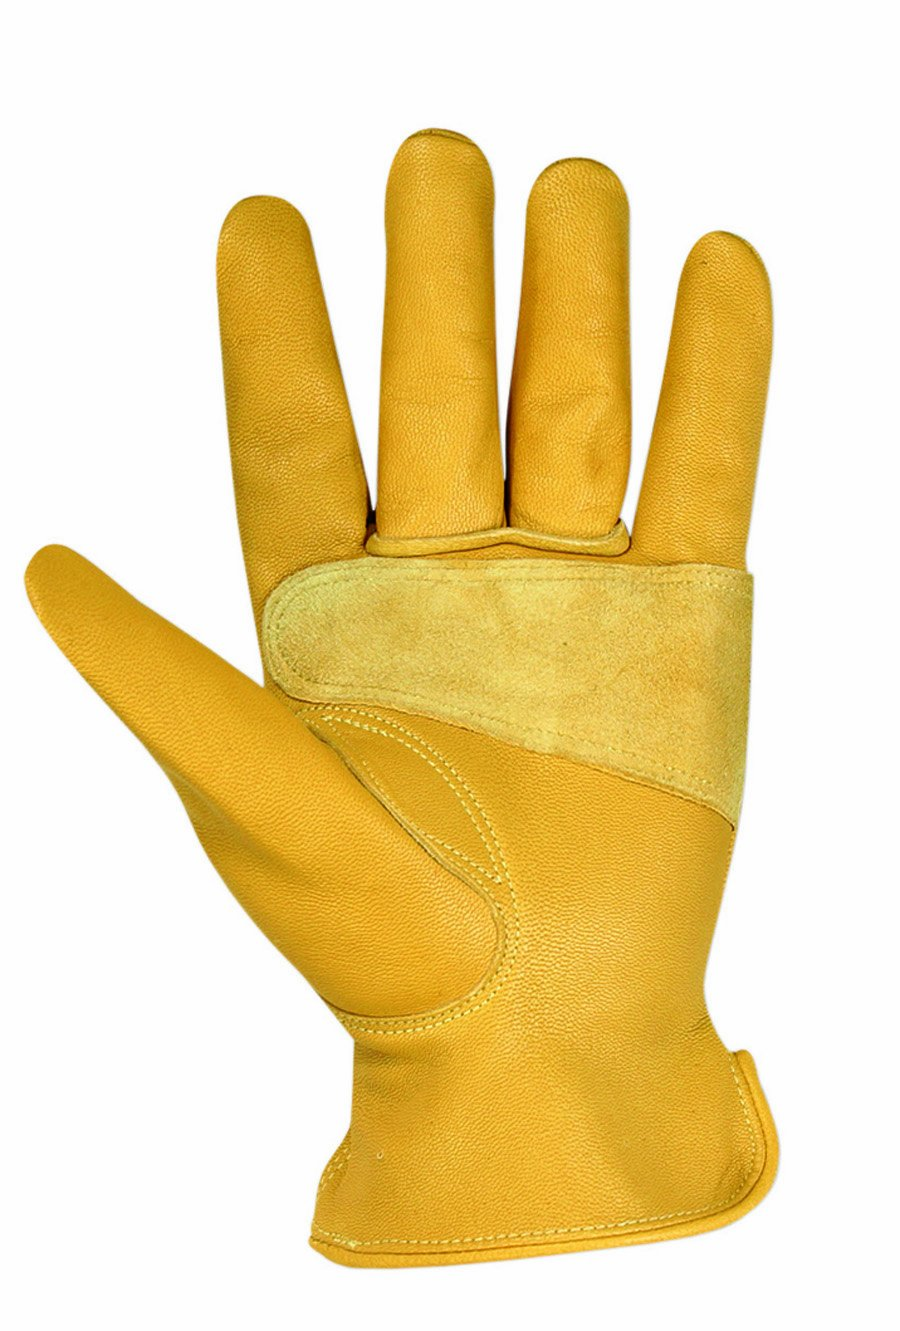 Goat leather work gloves - Custom Leathercraft 2060l Top Grain Goatskin Work Gloves Large Leather Work Gloves Amazon Com